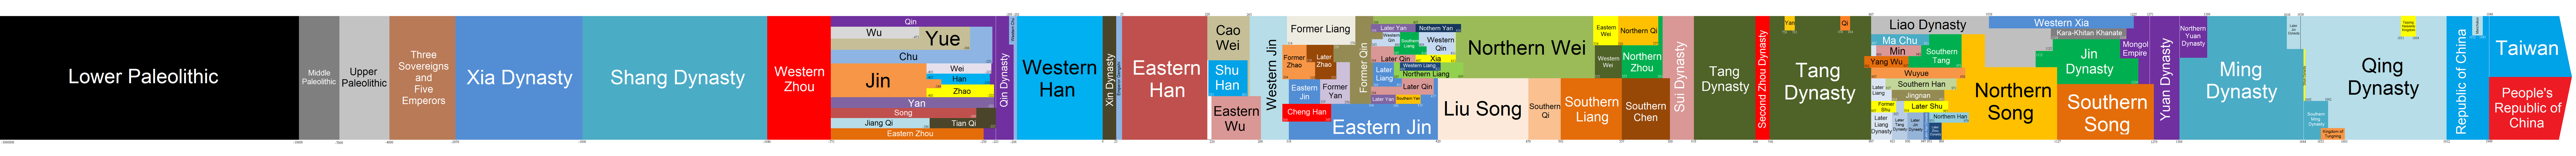 a chinese history Introduction to the dynasties of ancient china shang, chou, han, manchu, age of warring staes and confucius included colorful standards-based lesson includes interactive quiz designed for.